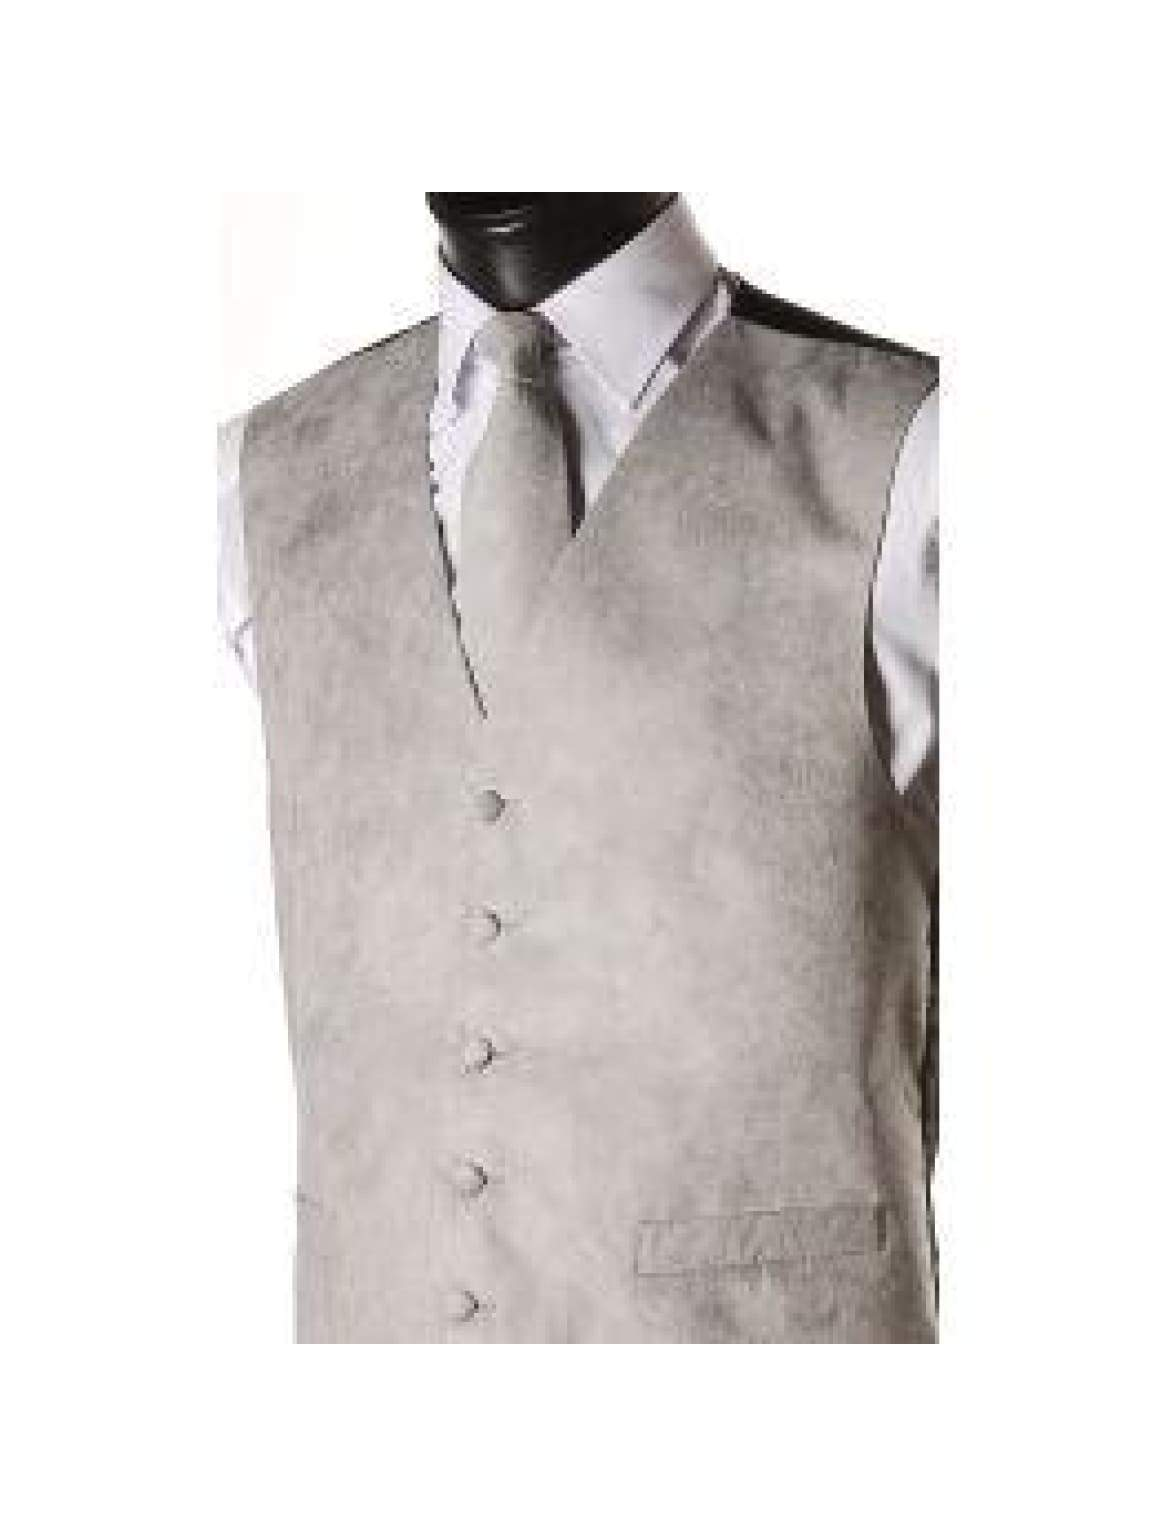 L A Smith Grey Suede Look Waistcoat - S - Suit & Tailoring